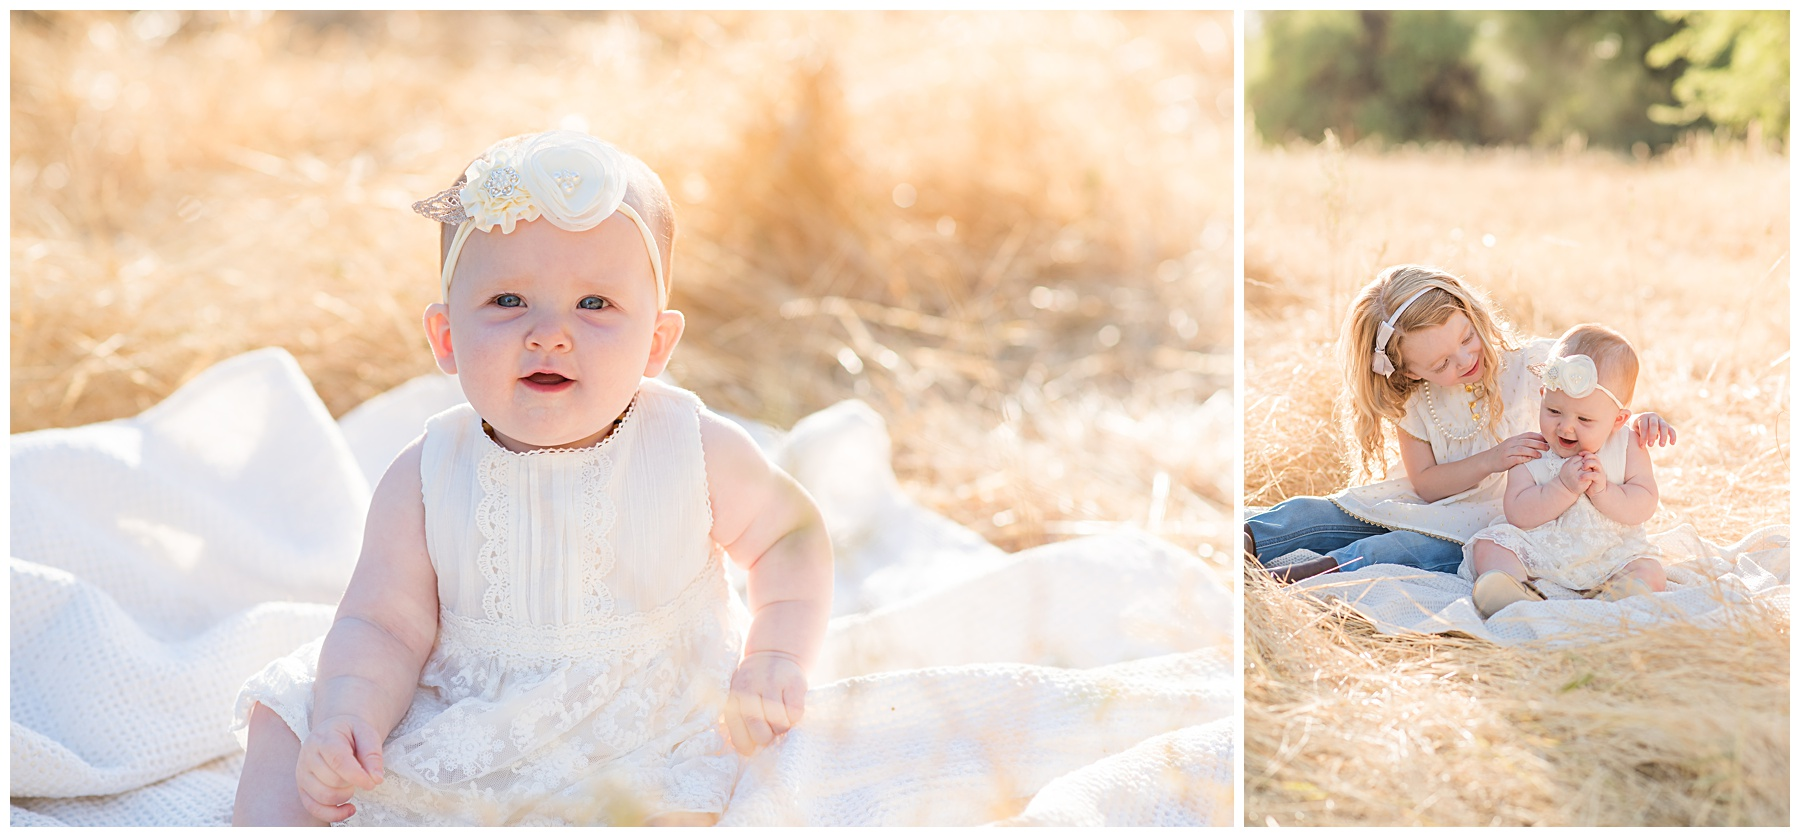 Golden hour child portraits in wheat field | SweetLife Photography